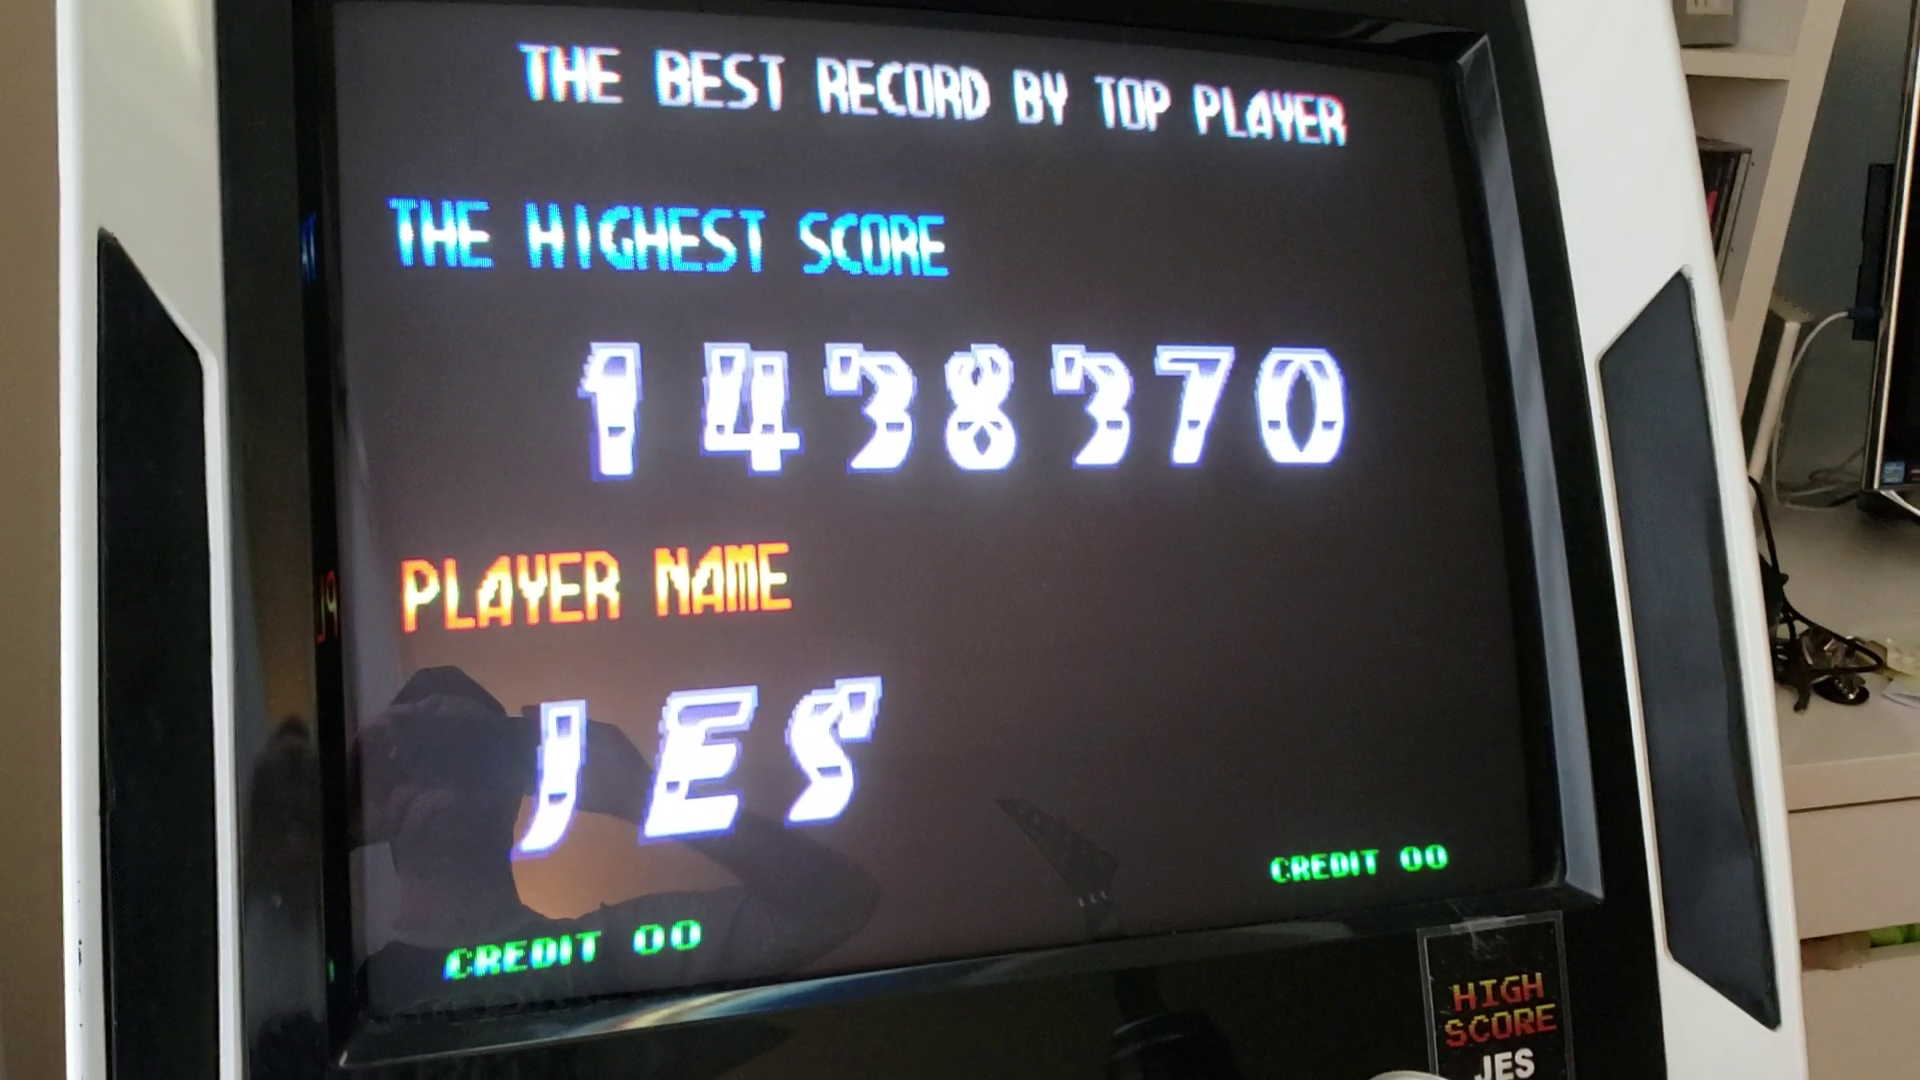 Blazing Star 1,438,370 points